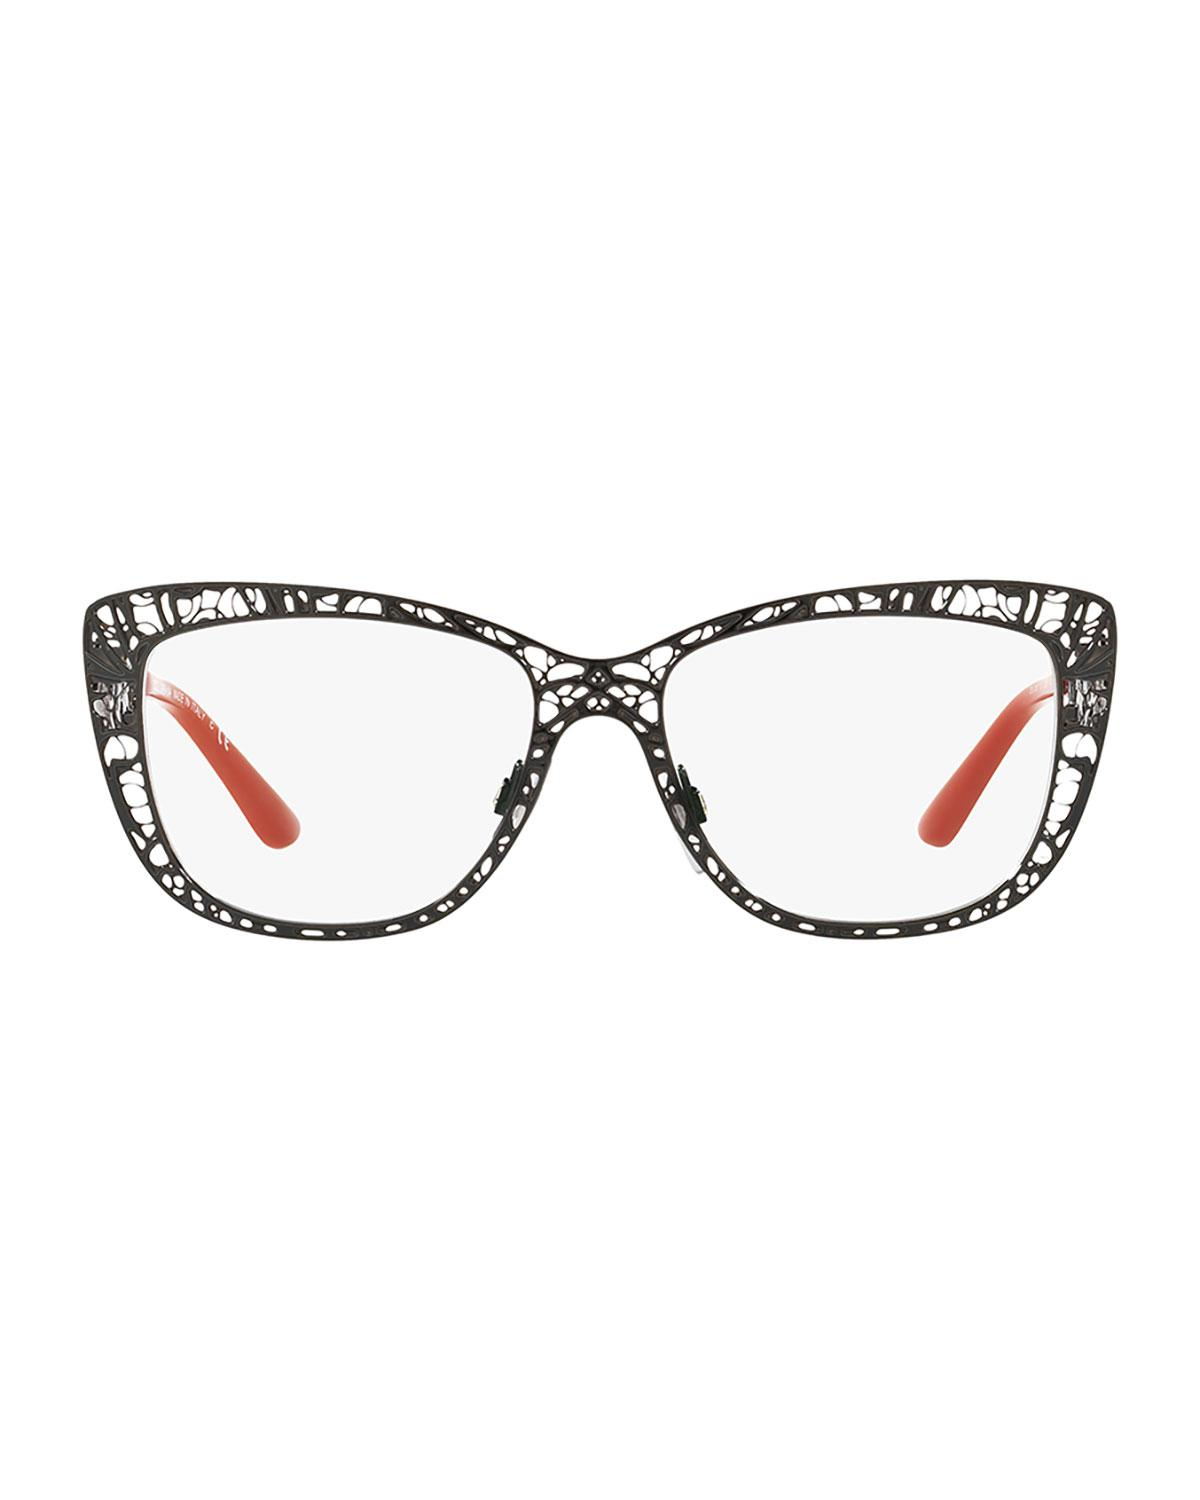 b92eaa8e122 Lyst - Dolce   Gabbana Flowers Lace Square Optical Frames in Black